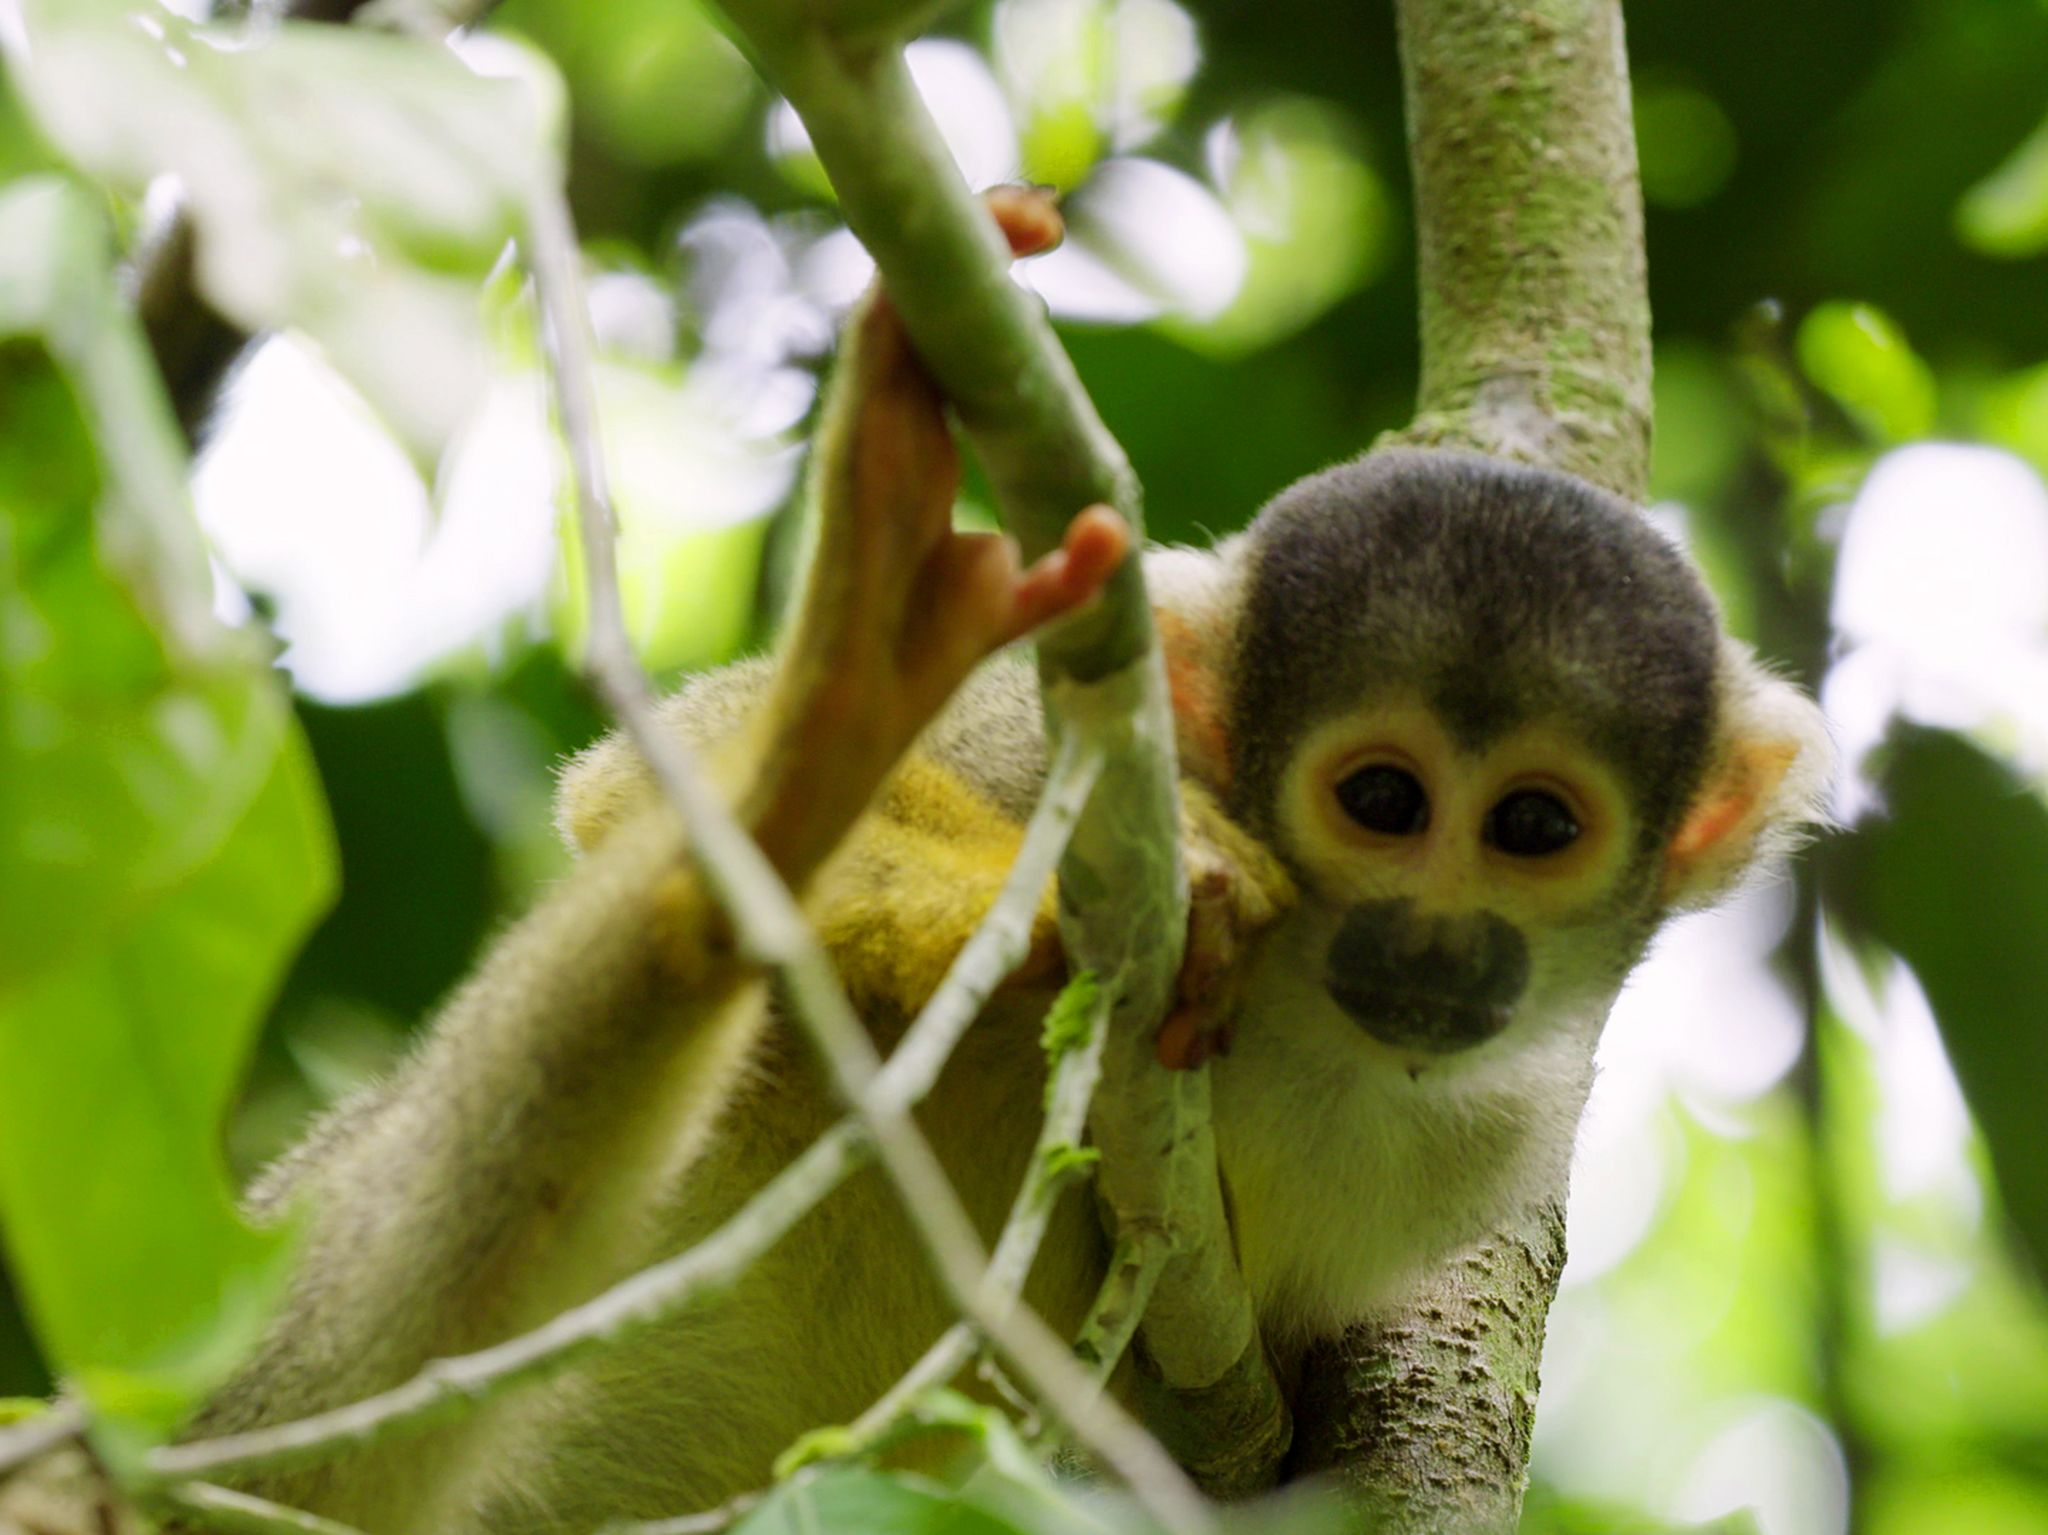 Tambopata, Research Centre, Peru: Squirrel Monkey in a tree. This image is from Wild Peru: Andes... [Photo of the day - December 2018]